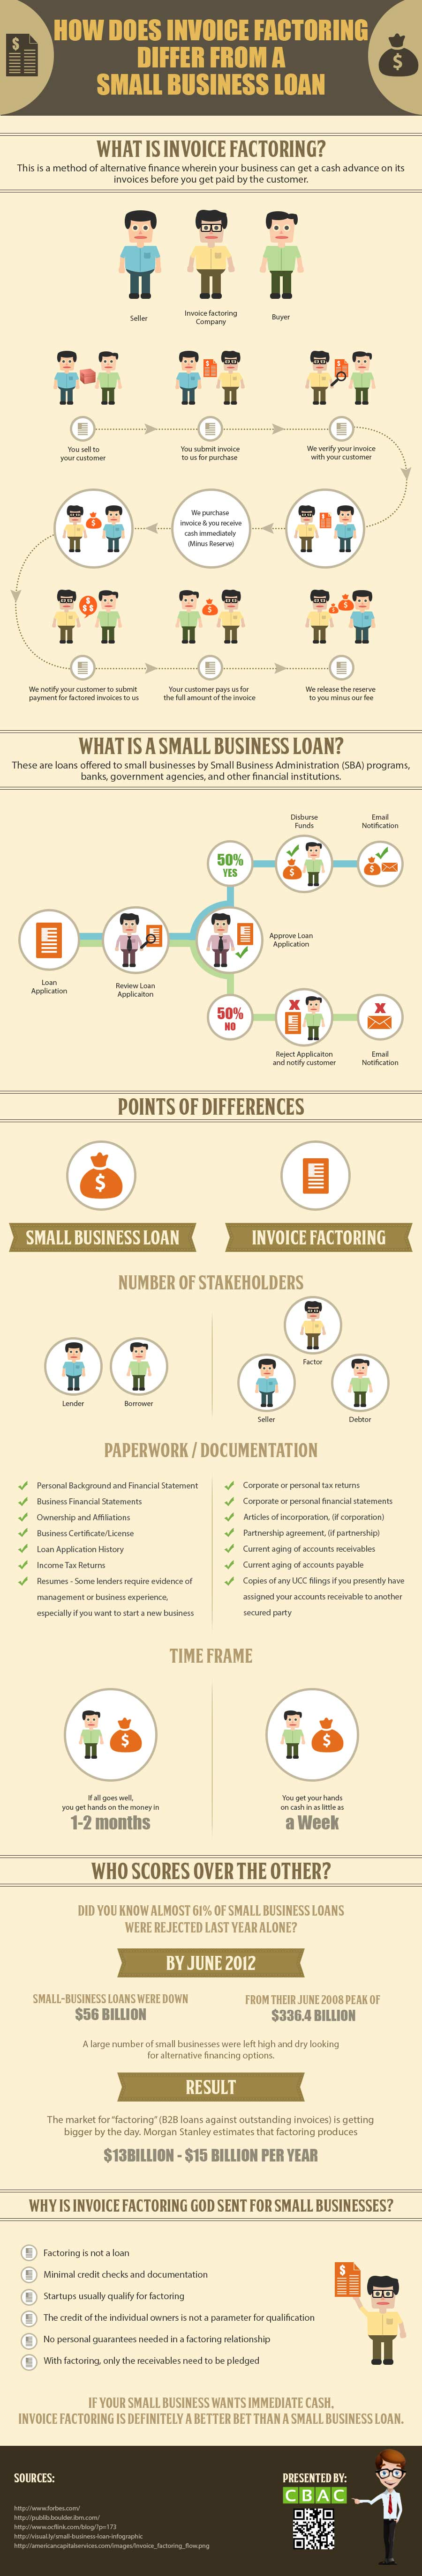 Invoice Factoring vs Small Business Loan